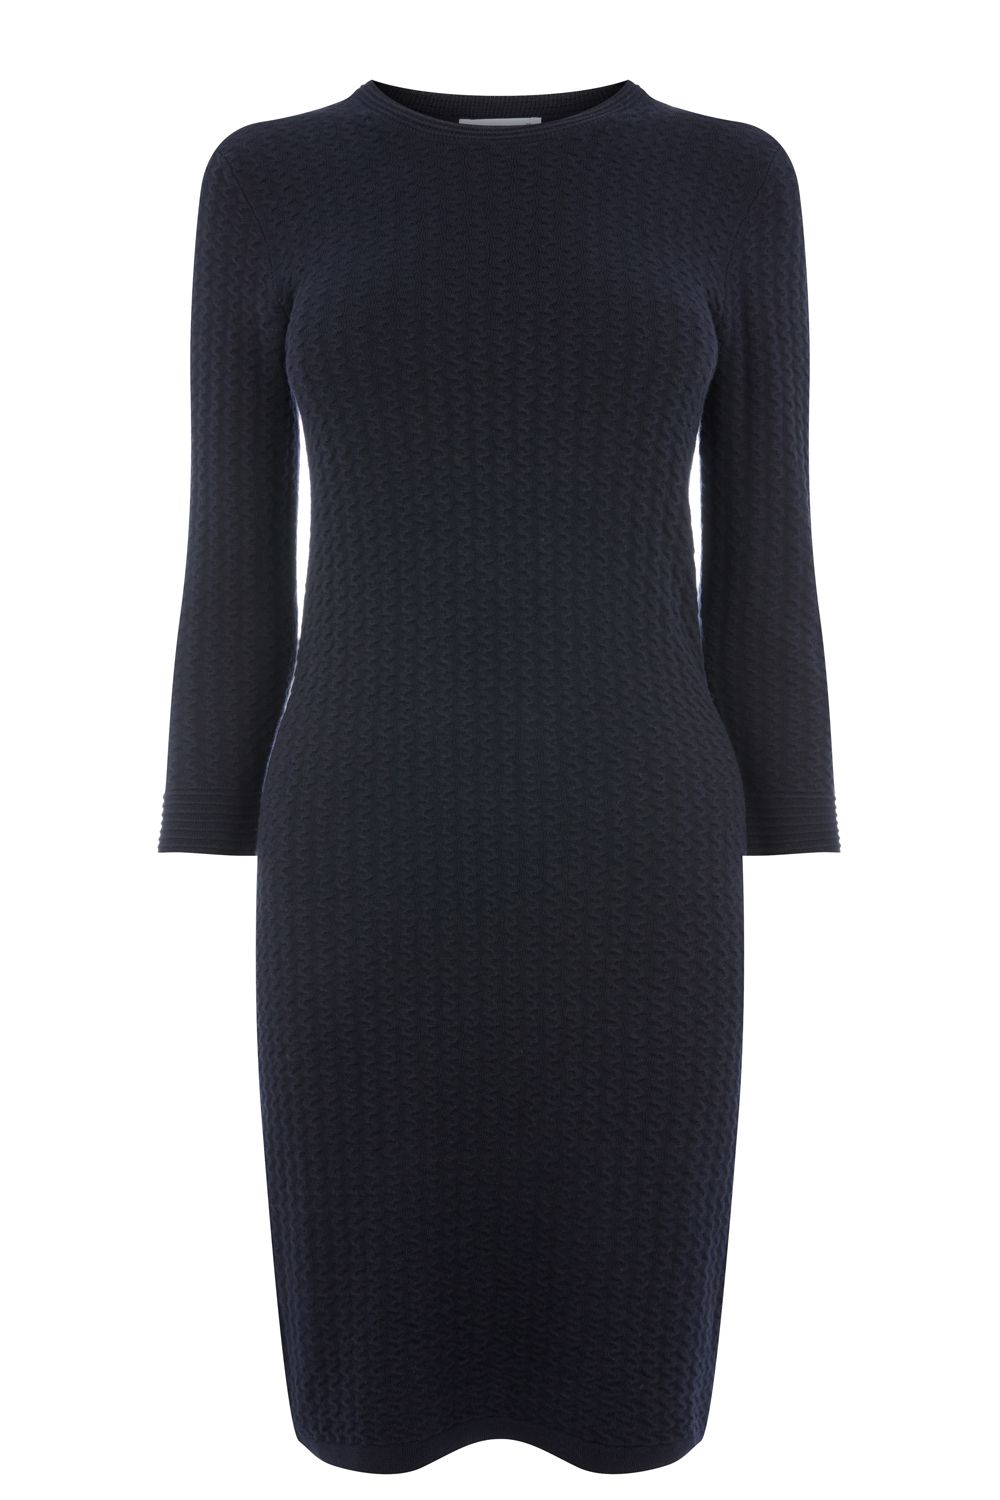 Warehouse Bobble Stitch Knit Dress, Blue